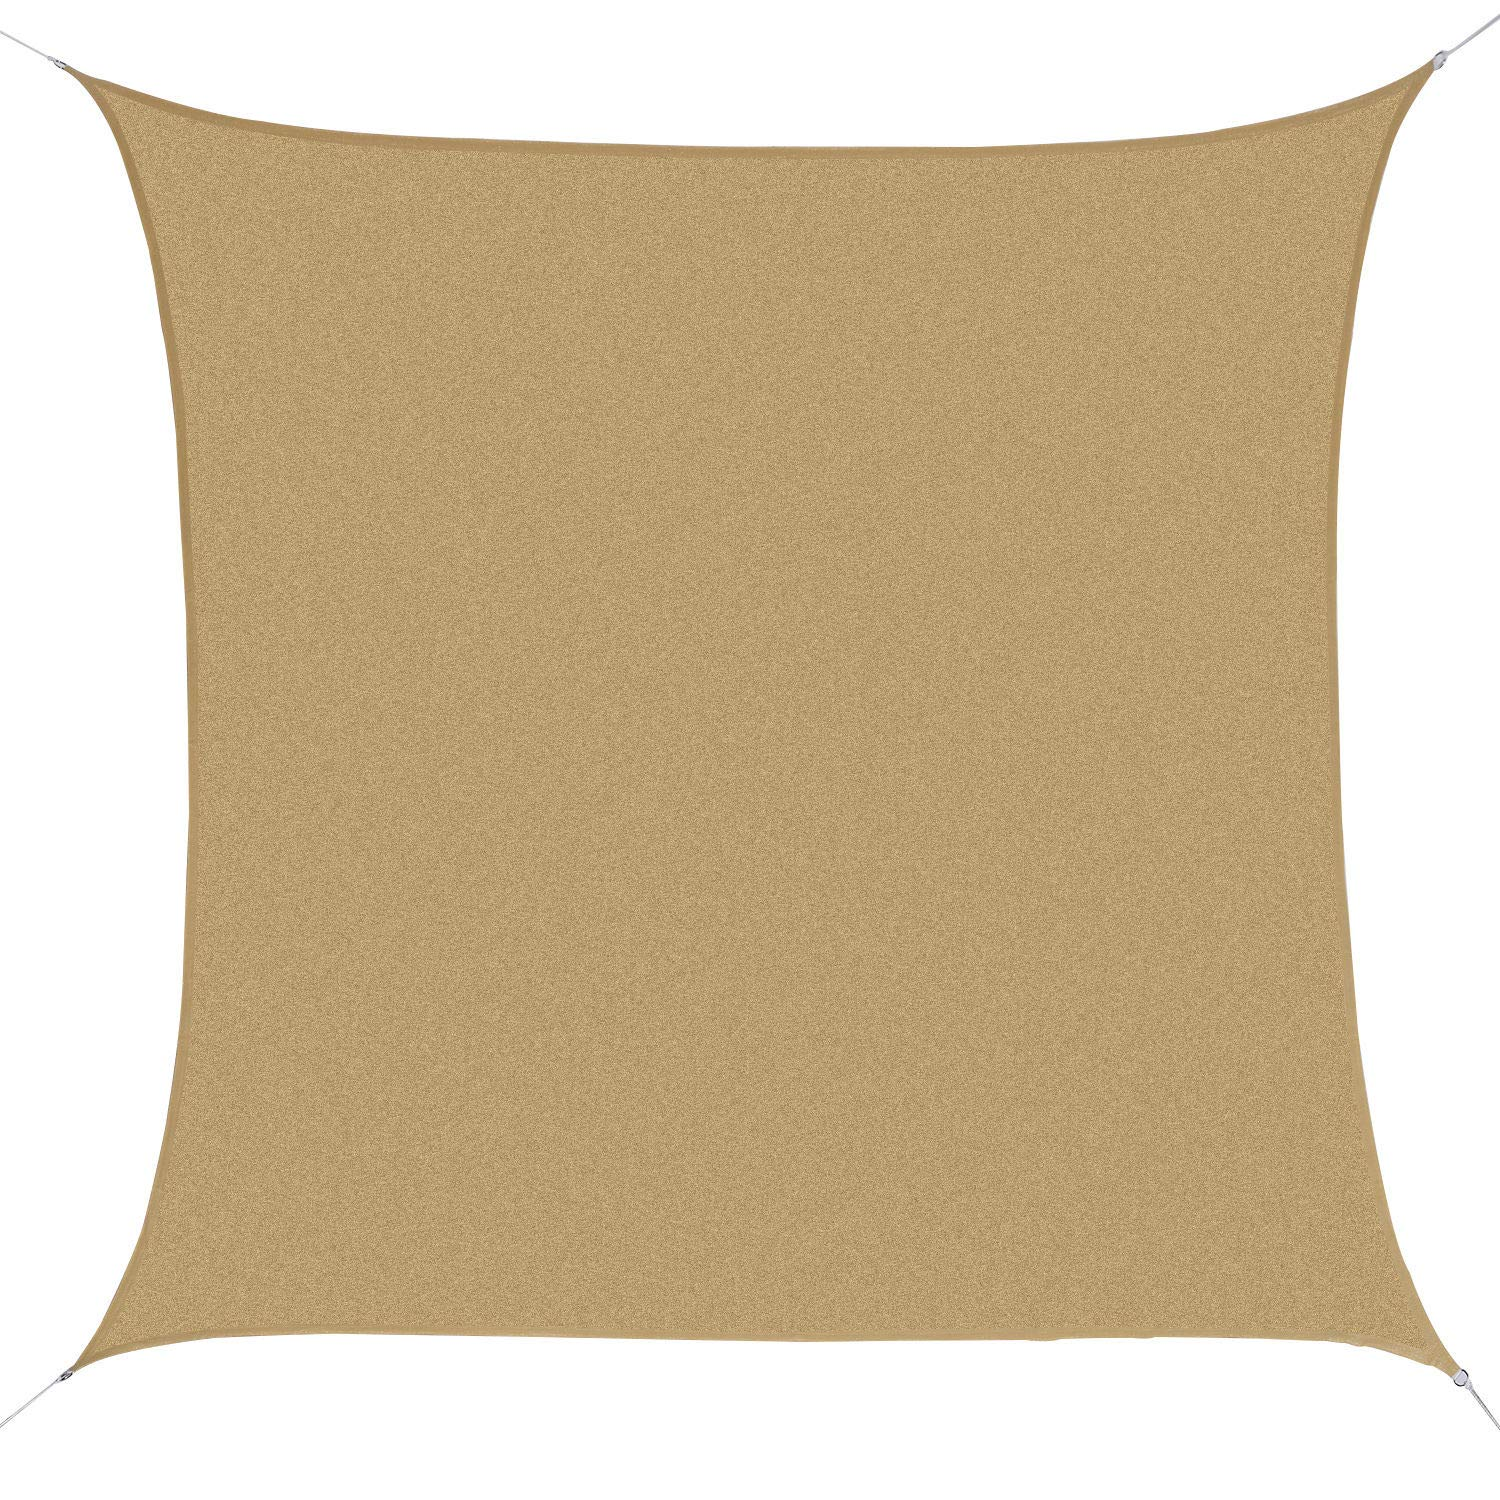 Outsunny 24' Square Outdoor Patio Sun Shade Sail Canopy - Sand